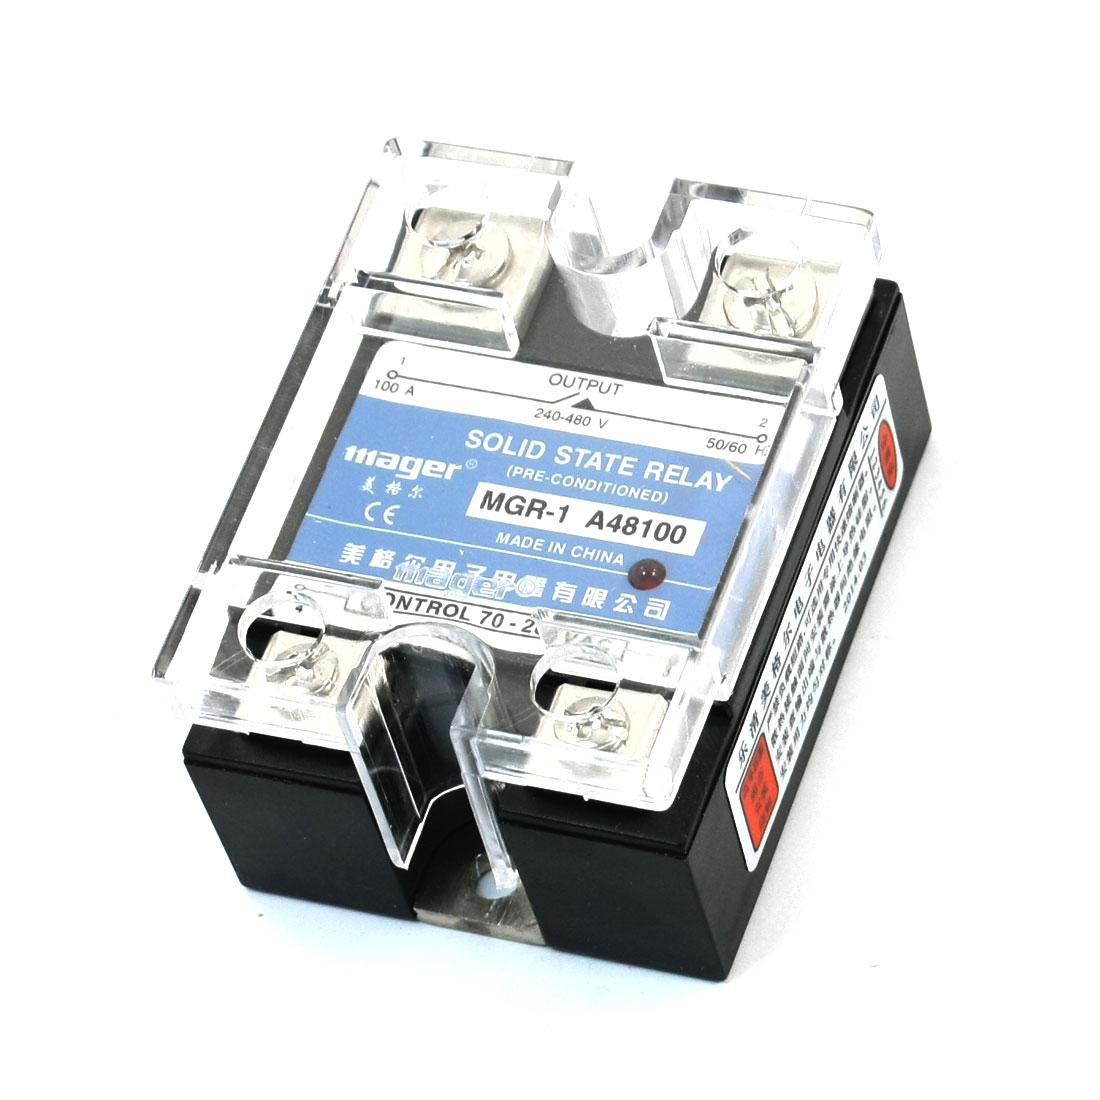 AC 24-480V 100A Single Phase AC Control AC Solid State Relay MGR-1 A48100